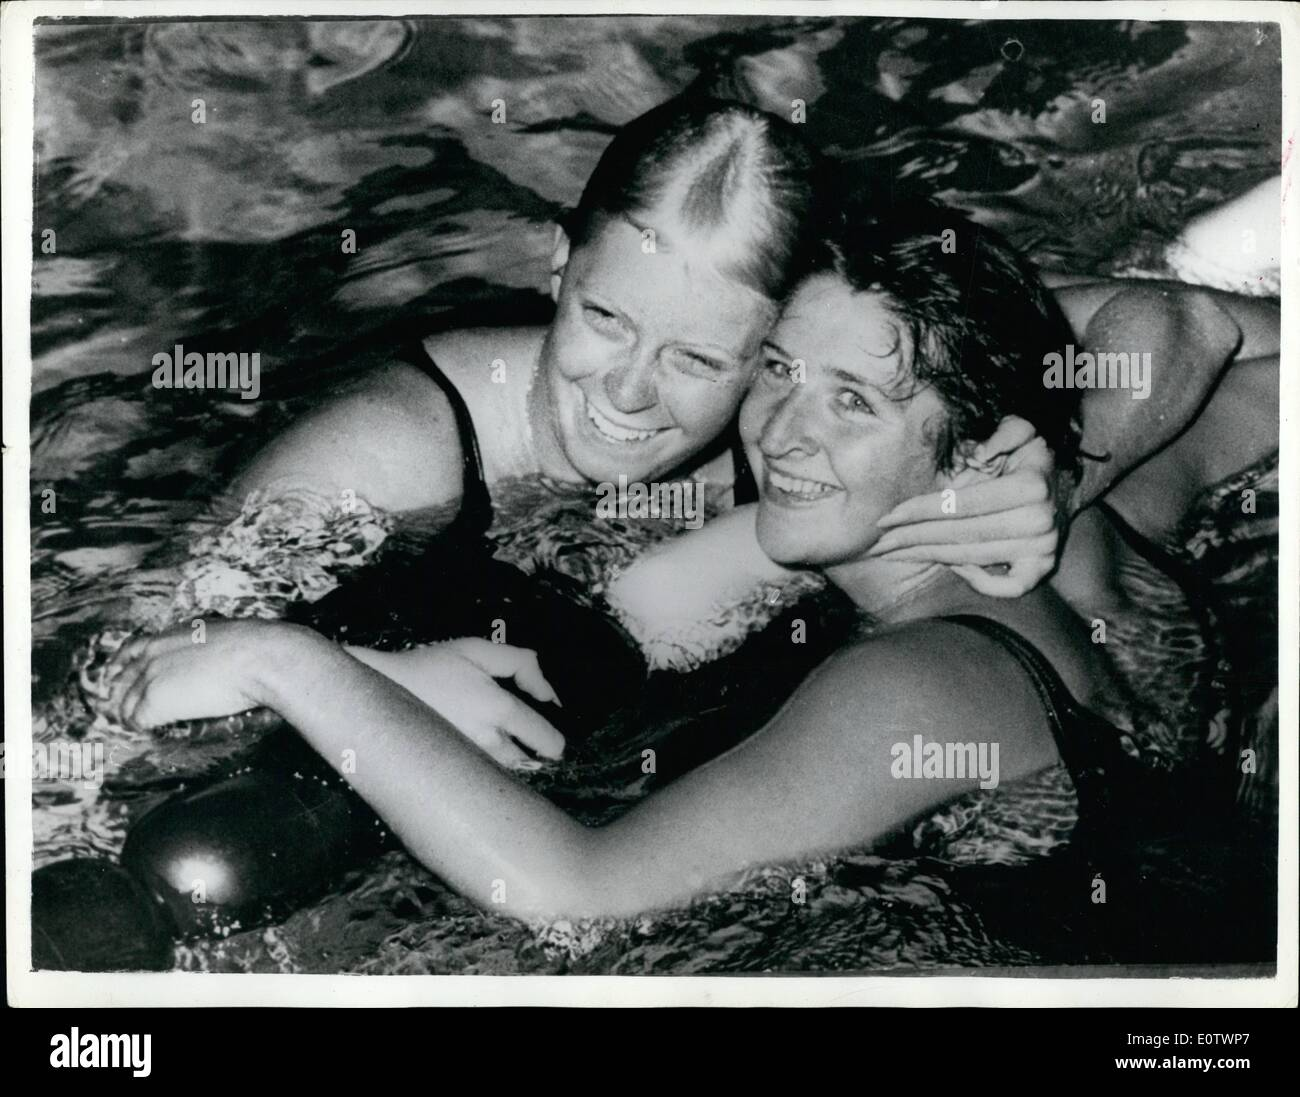 Aug. 08, 1960 - Olympic Games In Rome. Dawn Fraser Equals World Record. Photo shows Australian swimmer Dawn Fraser Stock Photo